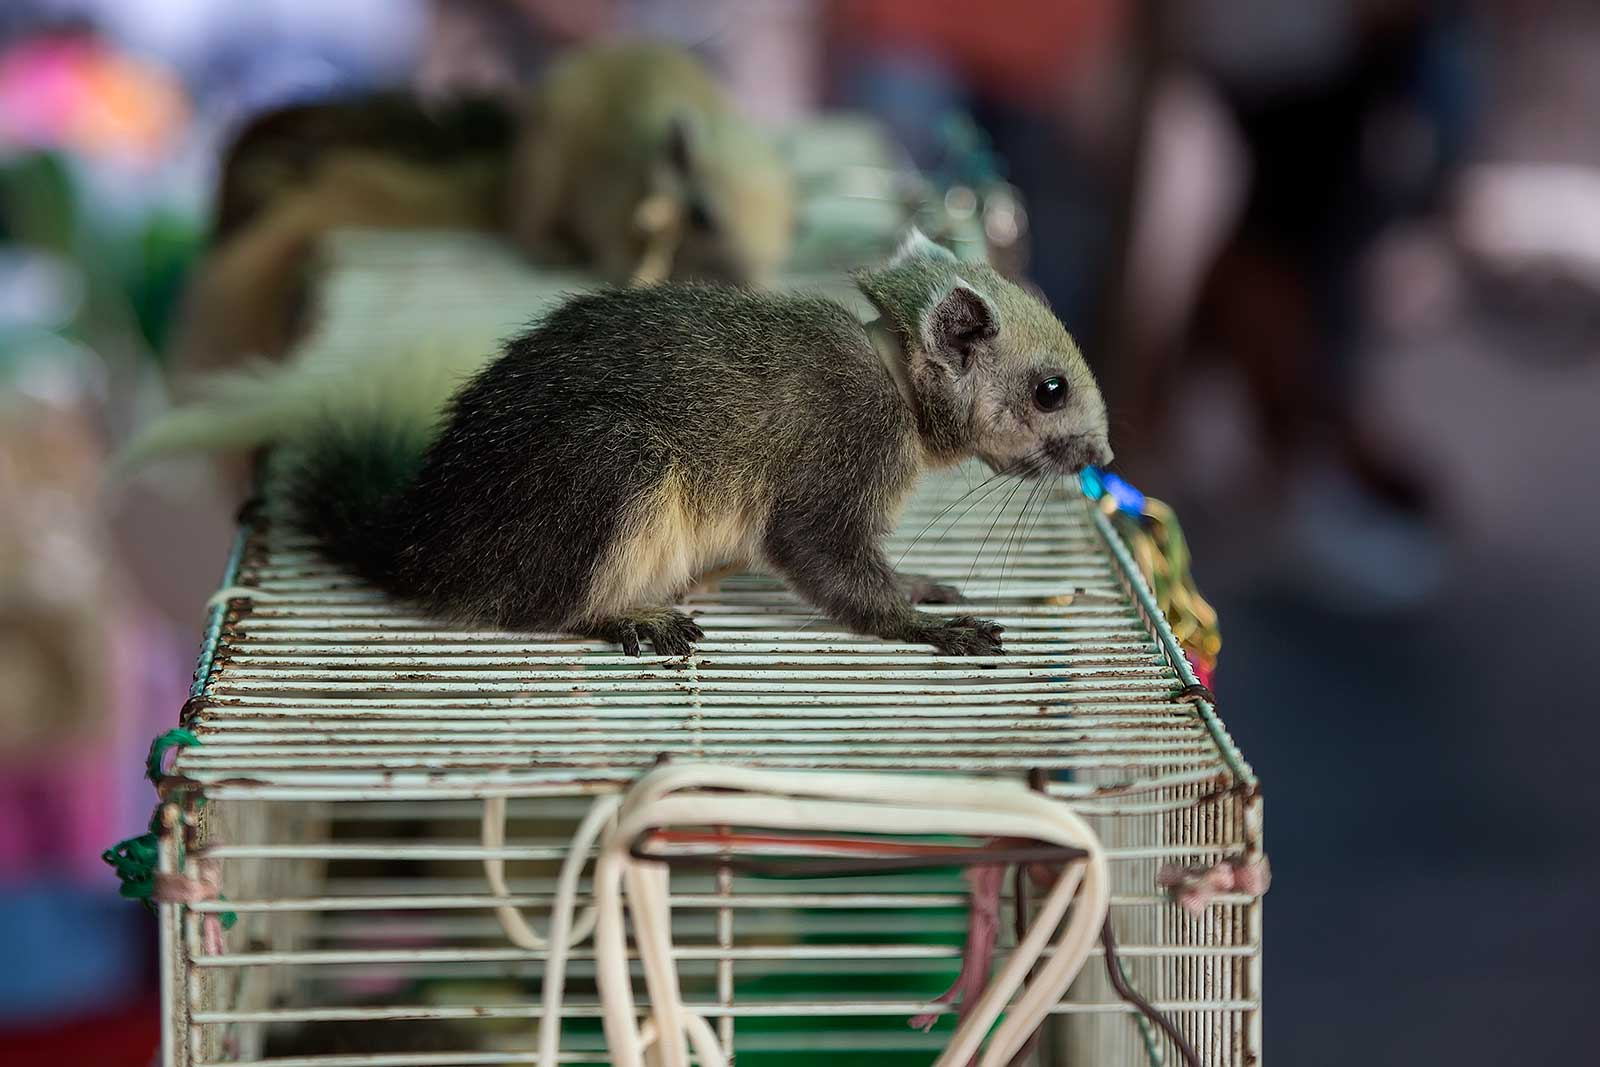 chatuchak-market-pet-section-squirrel